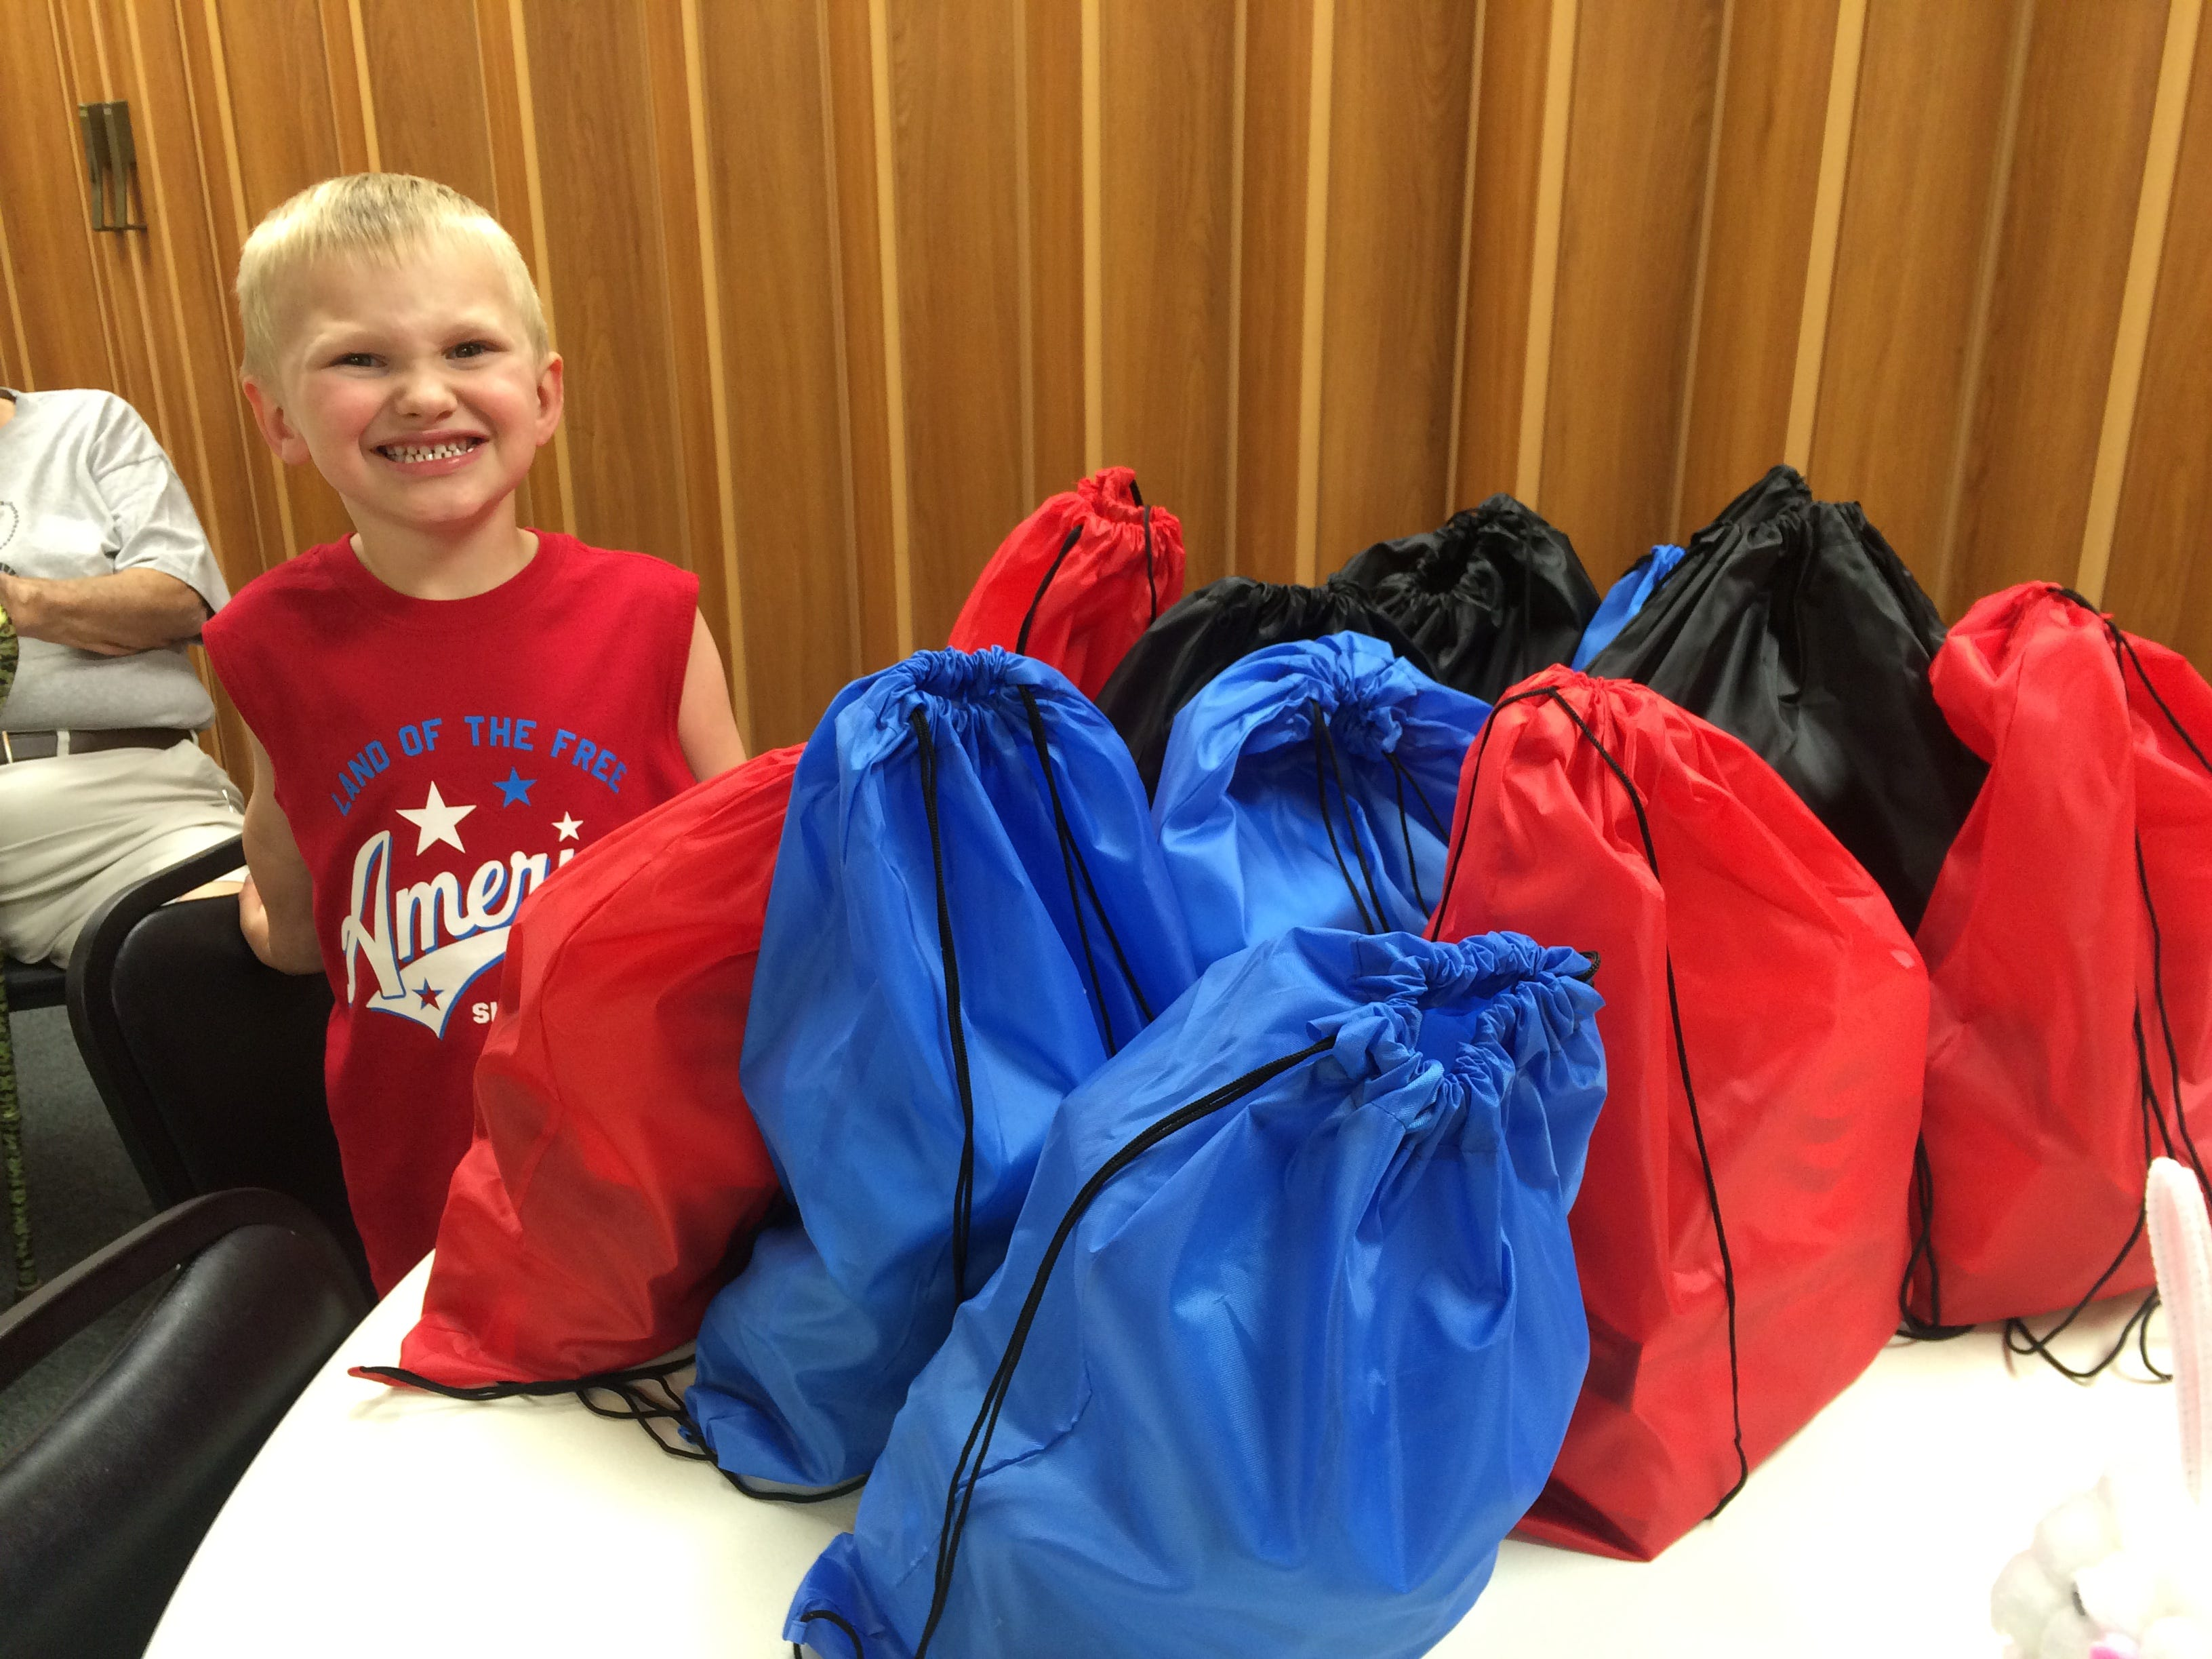 Corbin Odekirk prepares bags of food and toiletries for homeless veterans in January 2017.